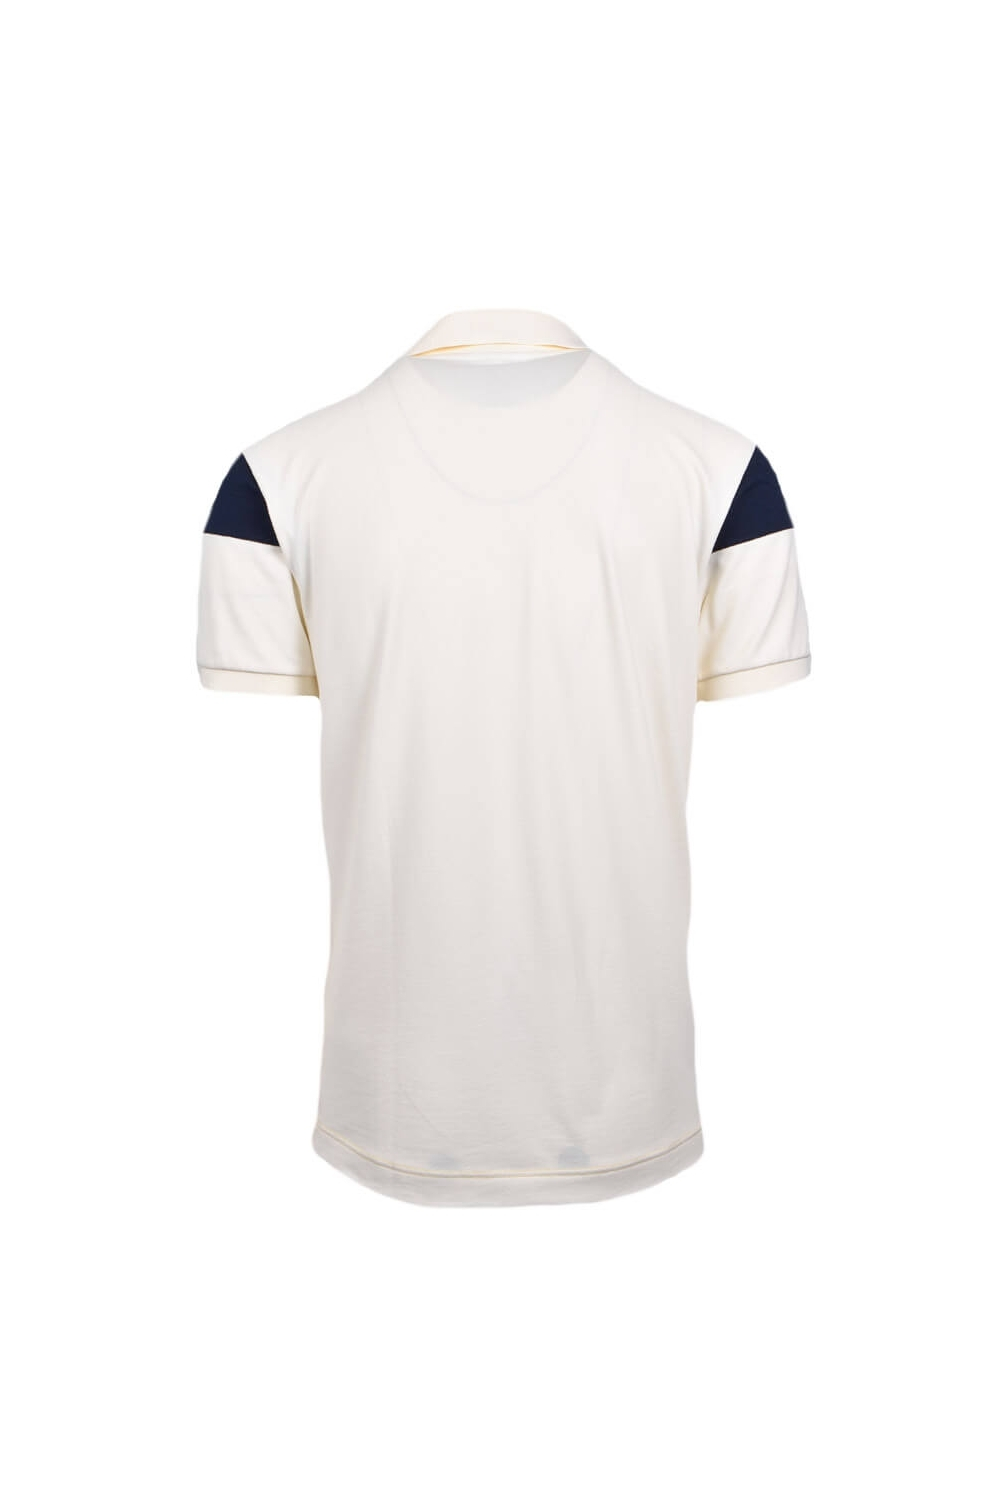 78a812bb Lacoste Colour Block Stripe Technical Pique Polo Shirt Cream Navy Gold